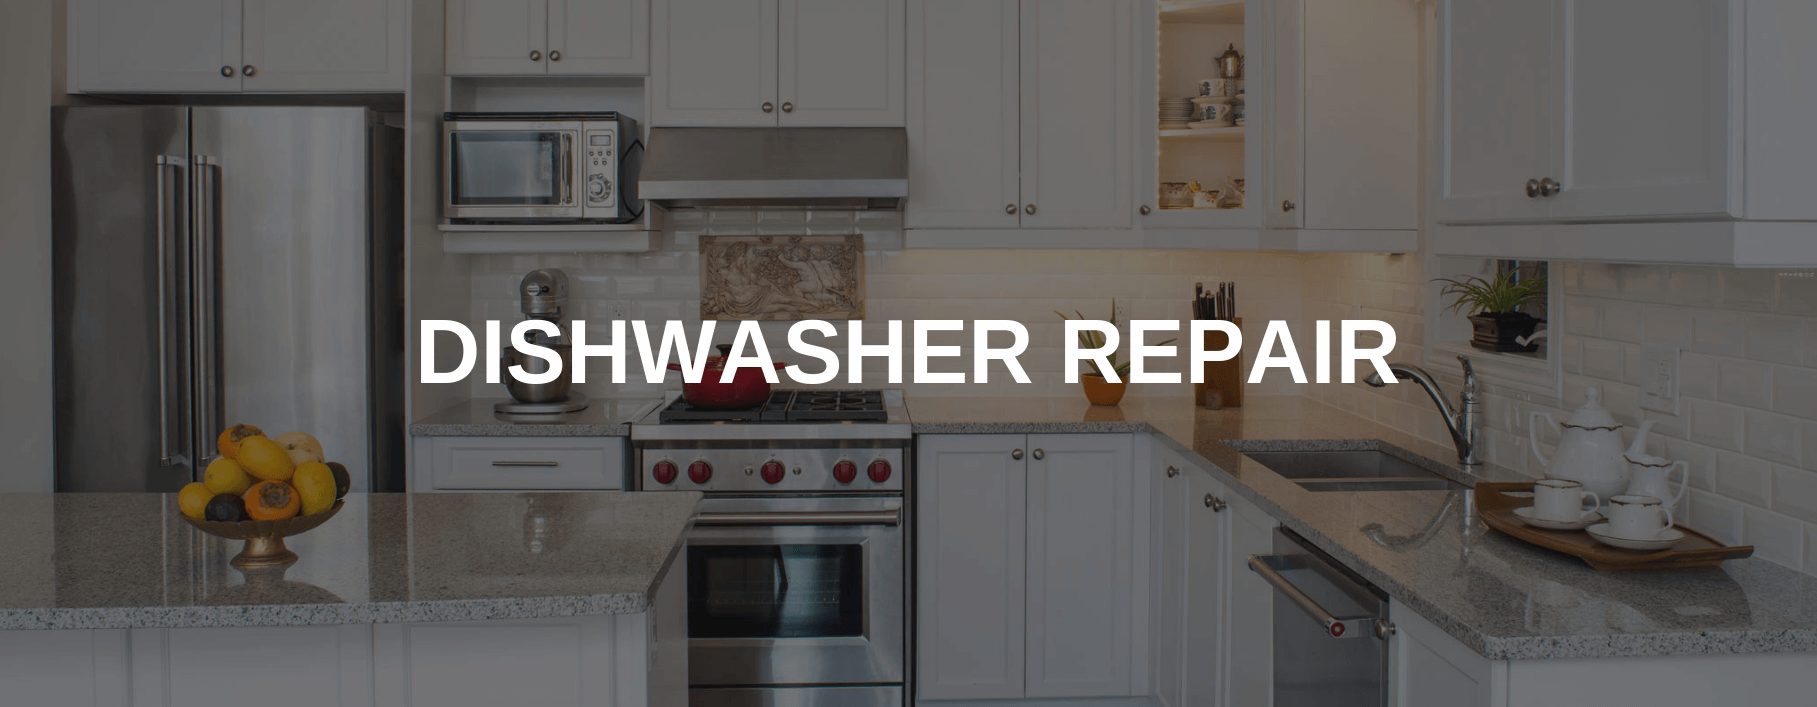 dishwasher repair thornton